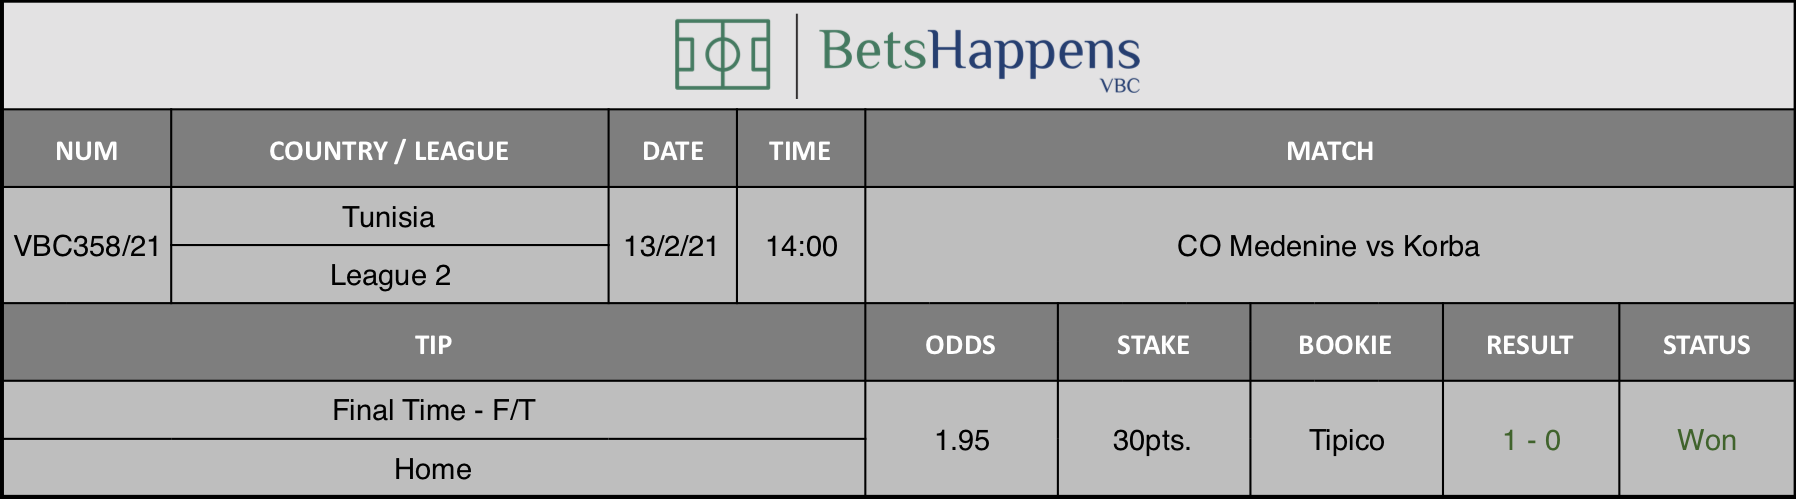 Results of our tip for the CO Medenine vs Korba match where Final Time - F/T Home is recommended.